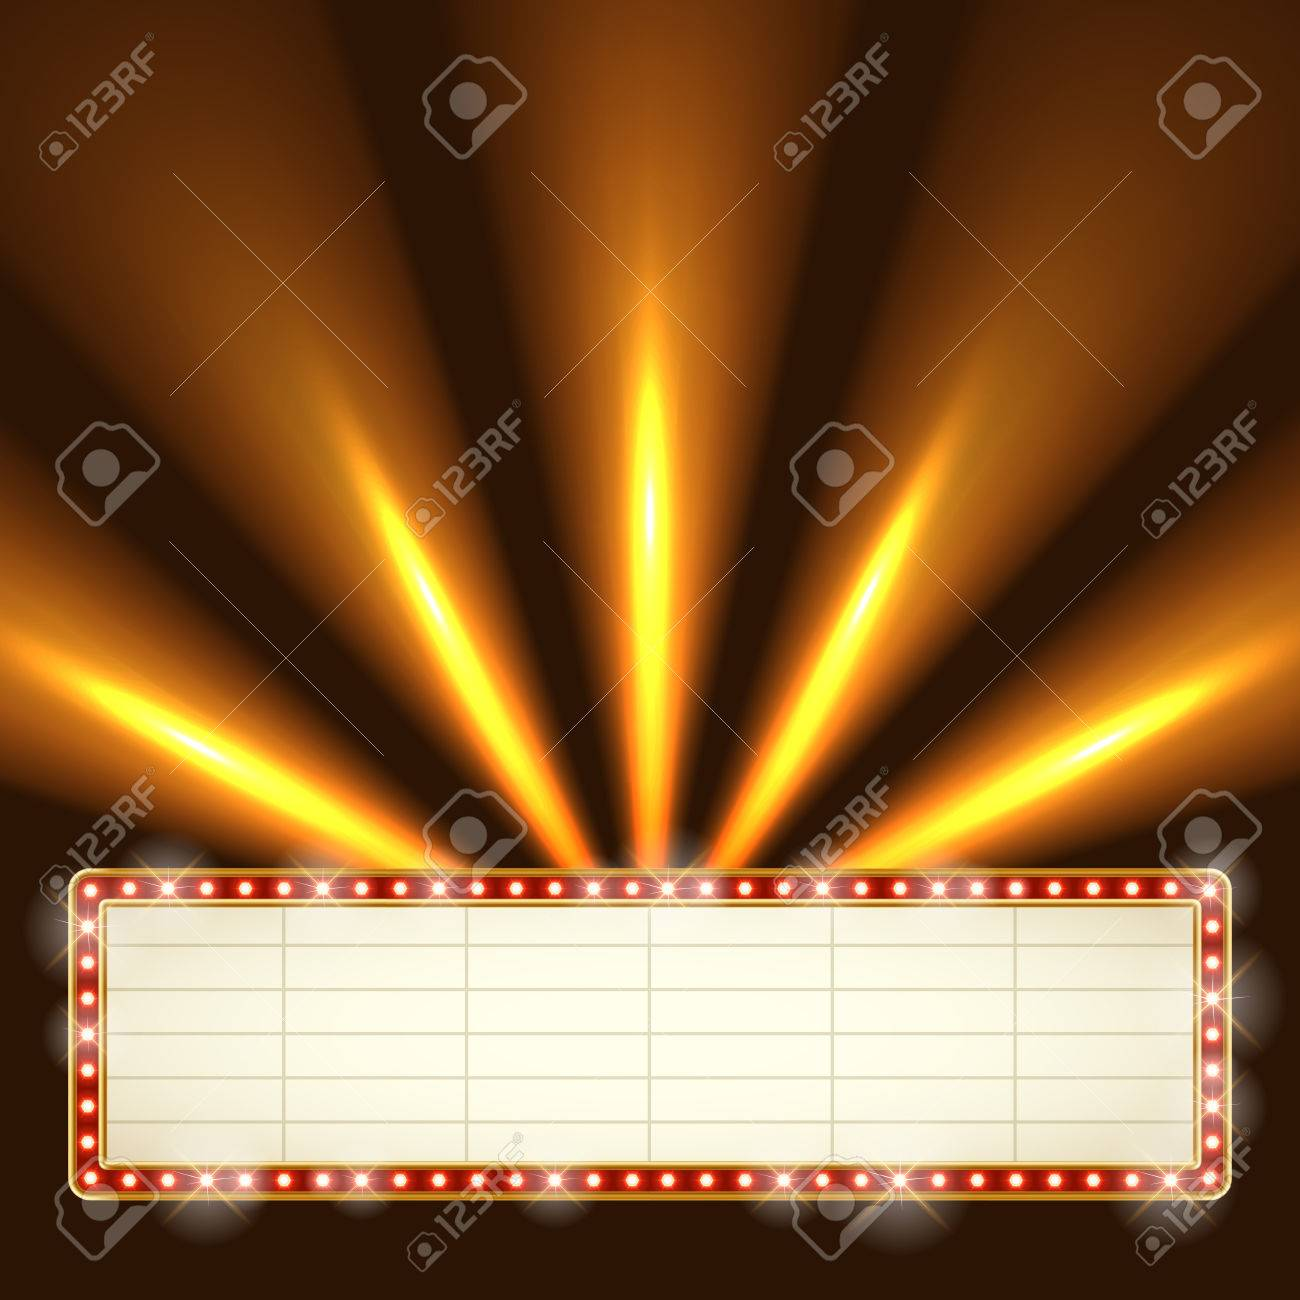 Blank Illuminated Marquee Frame With Bright Searchlights In The ...